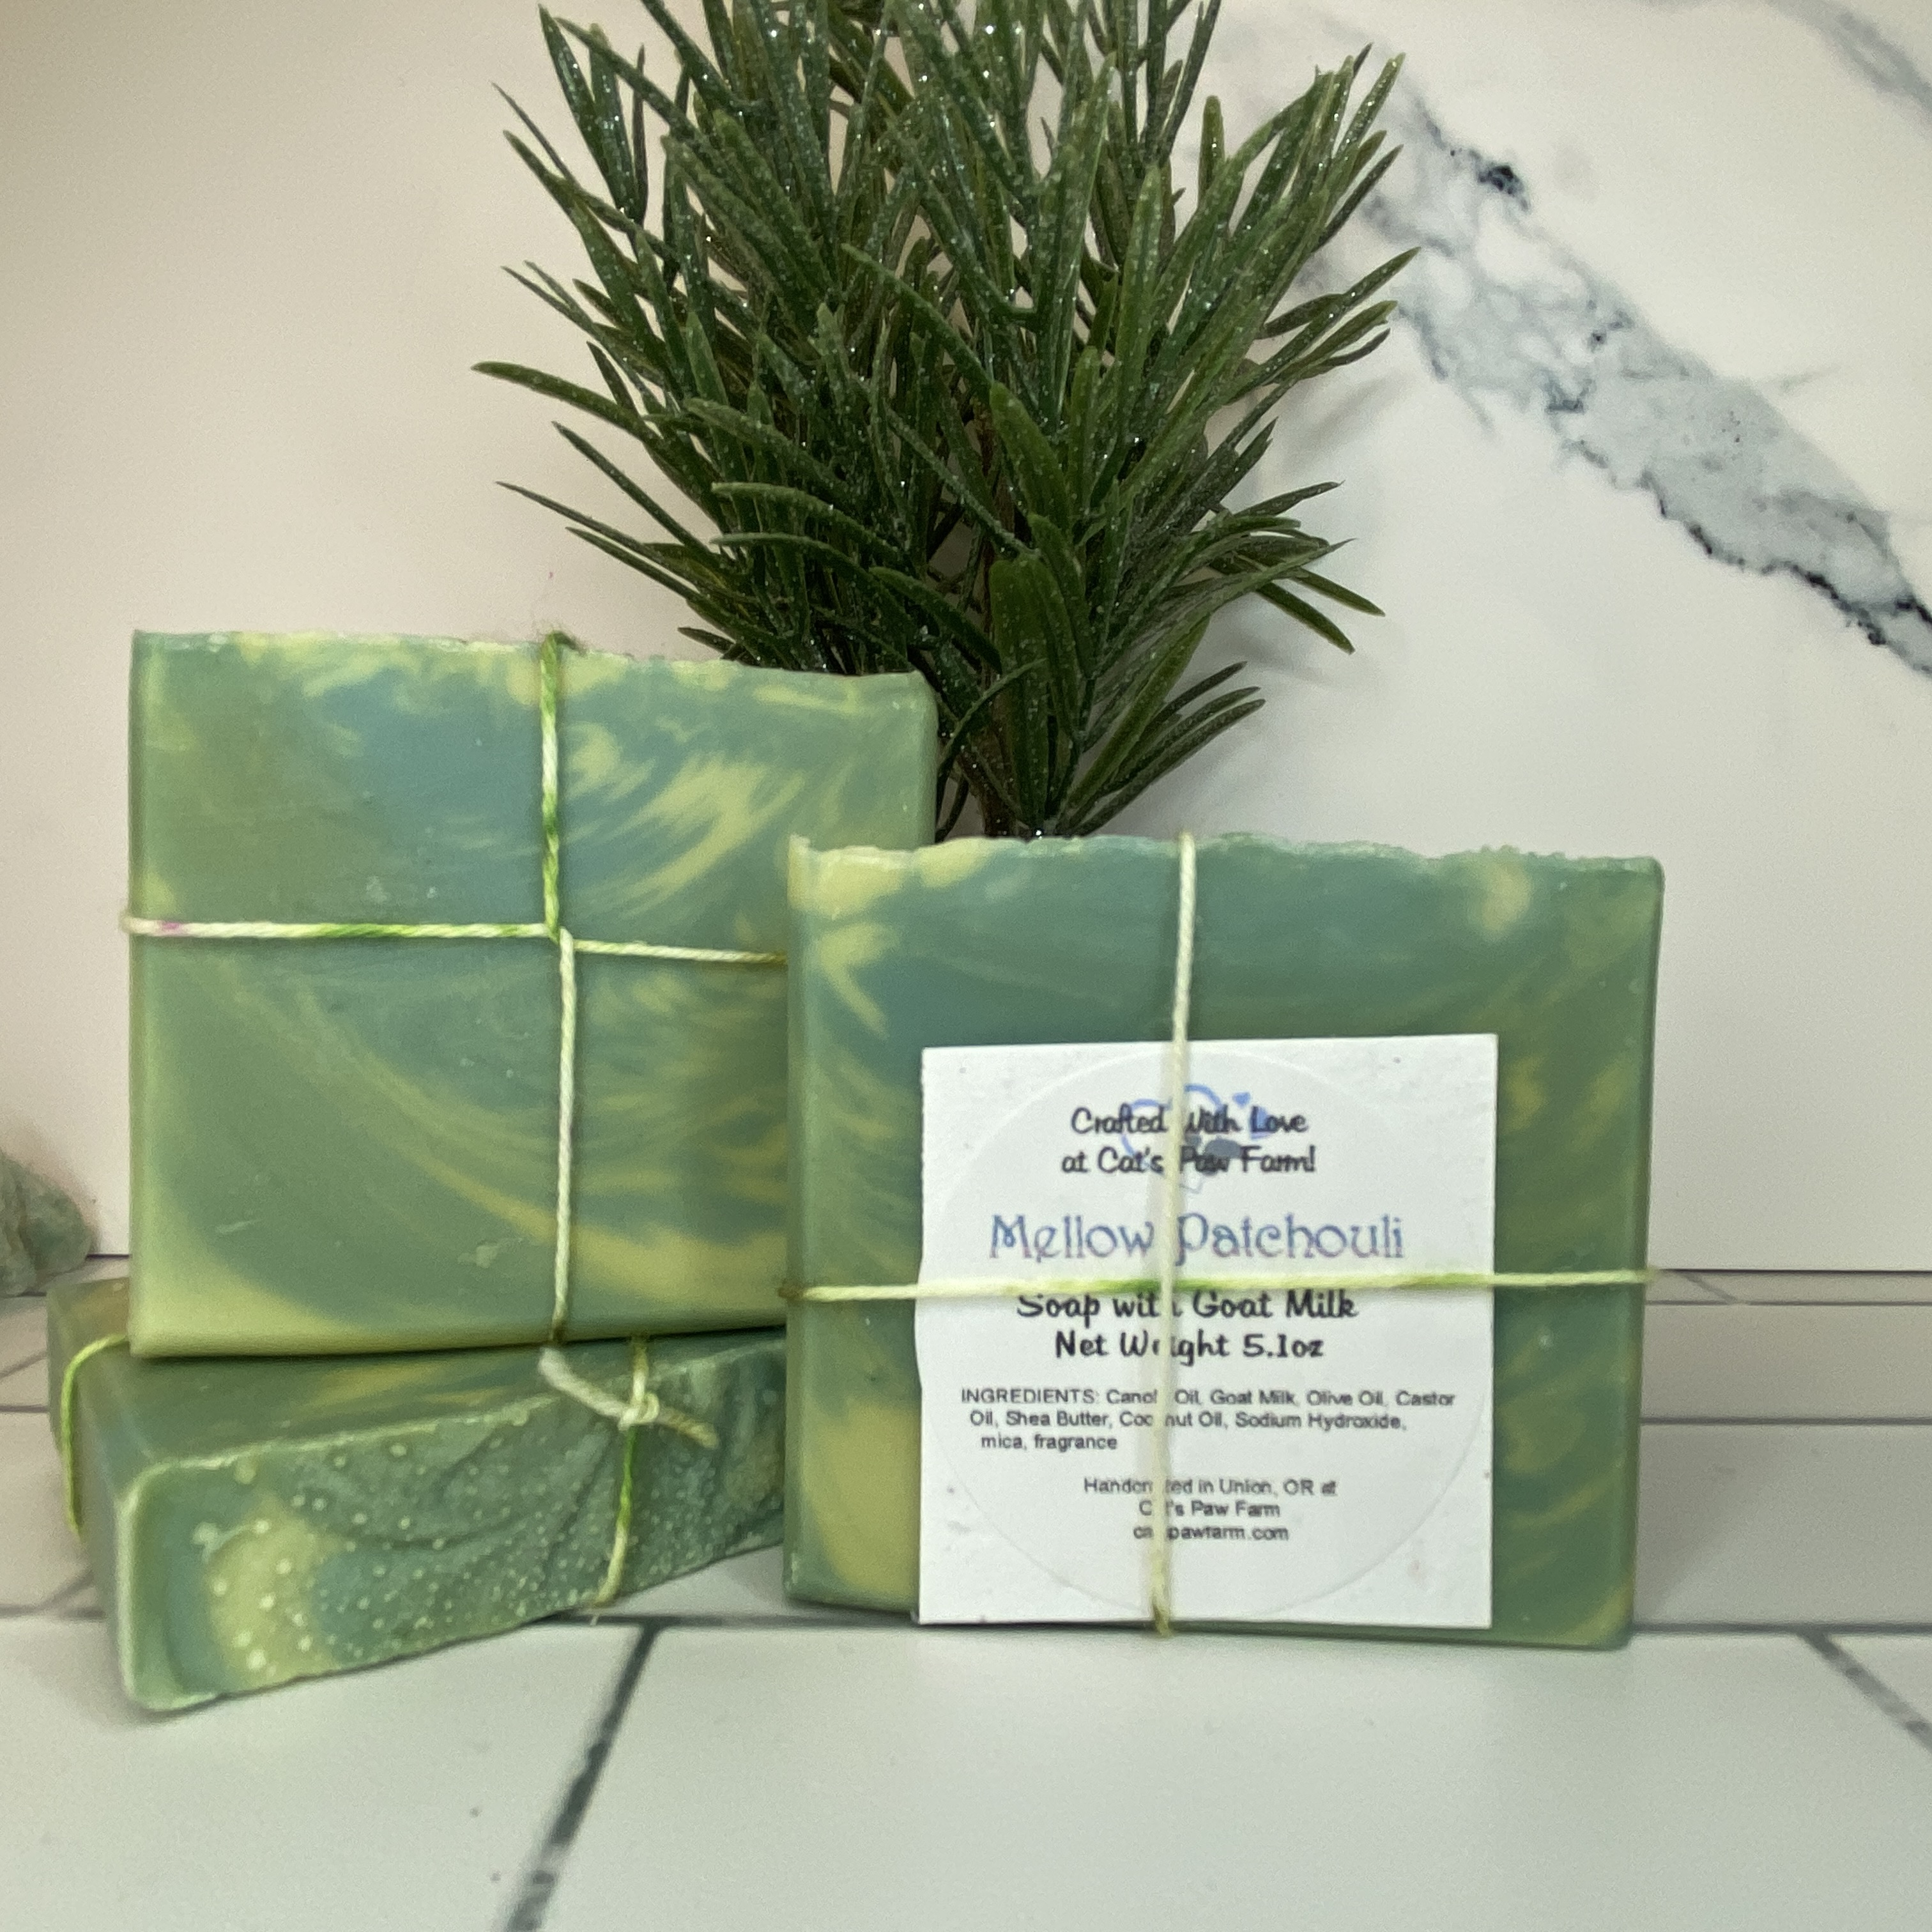 Mellow Patchouli Scented Soap with Goat Milk